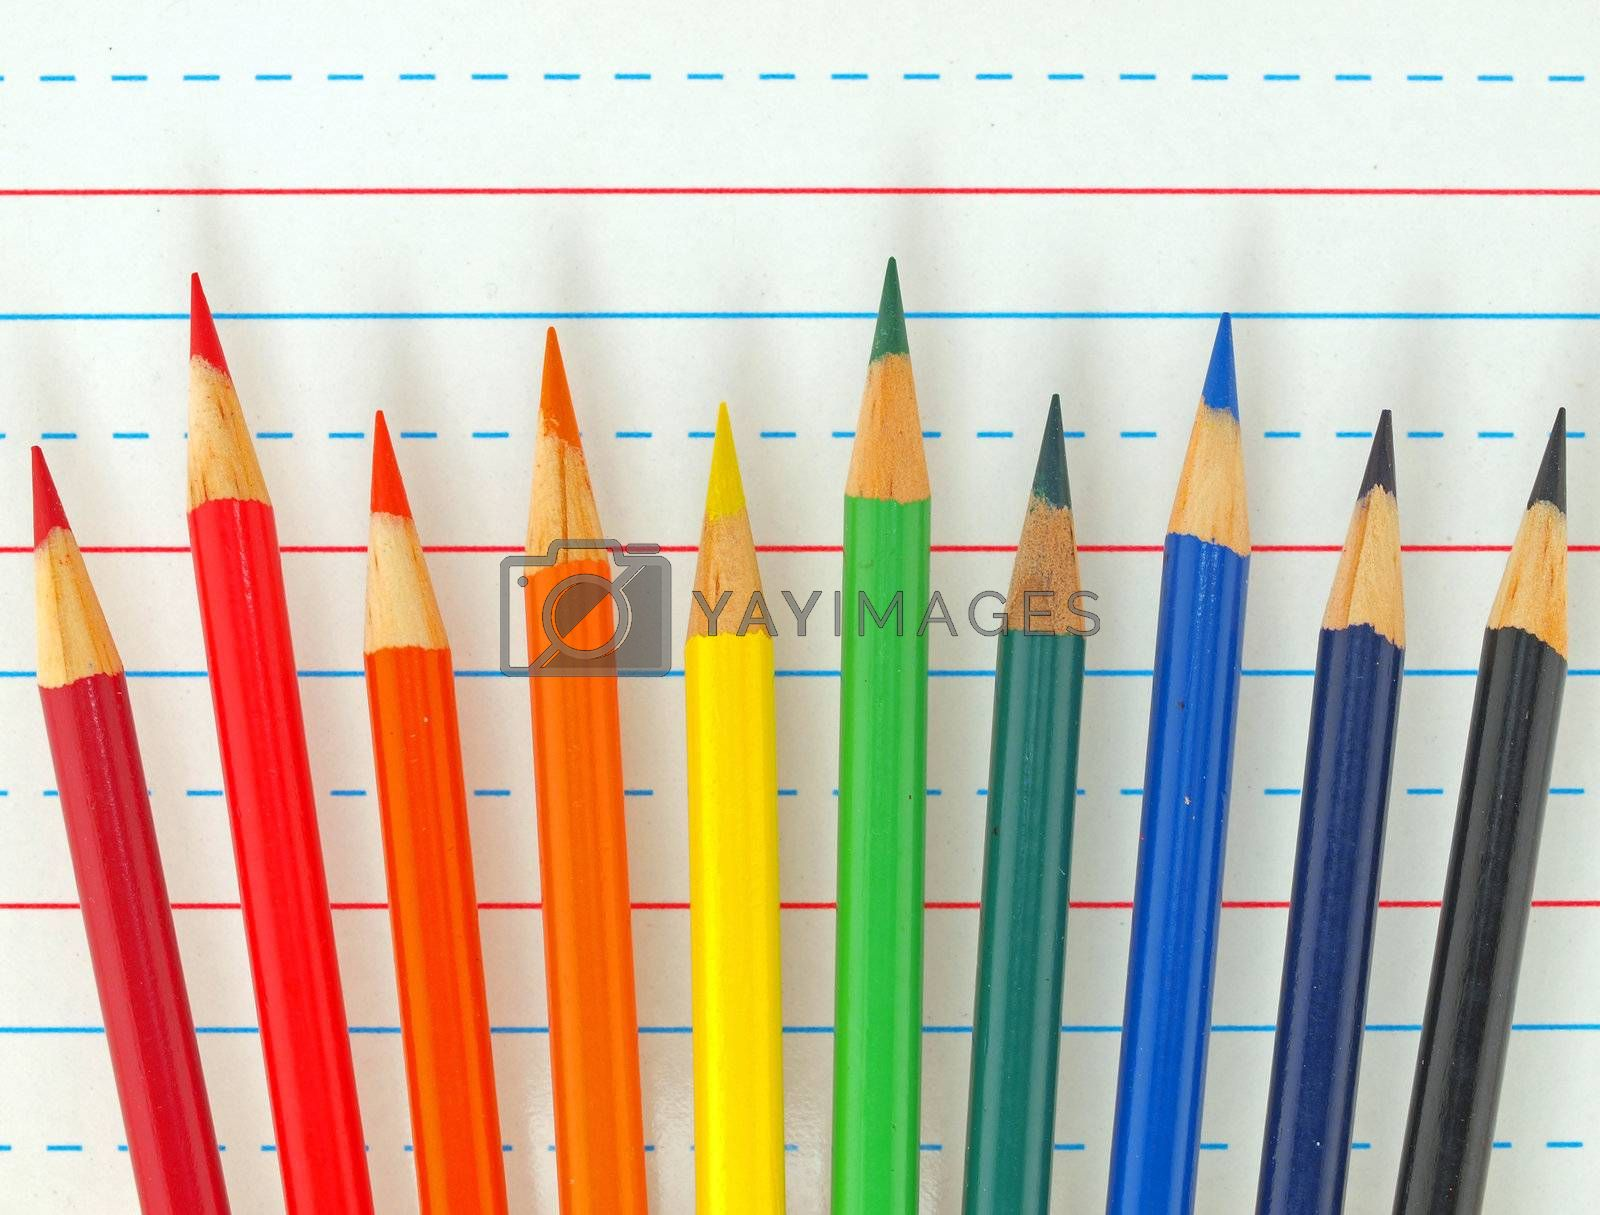 Rainbow of Colored Pencils Isolated on Lined Paper